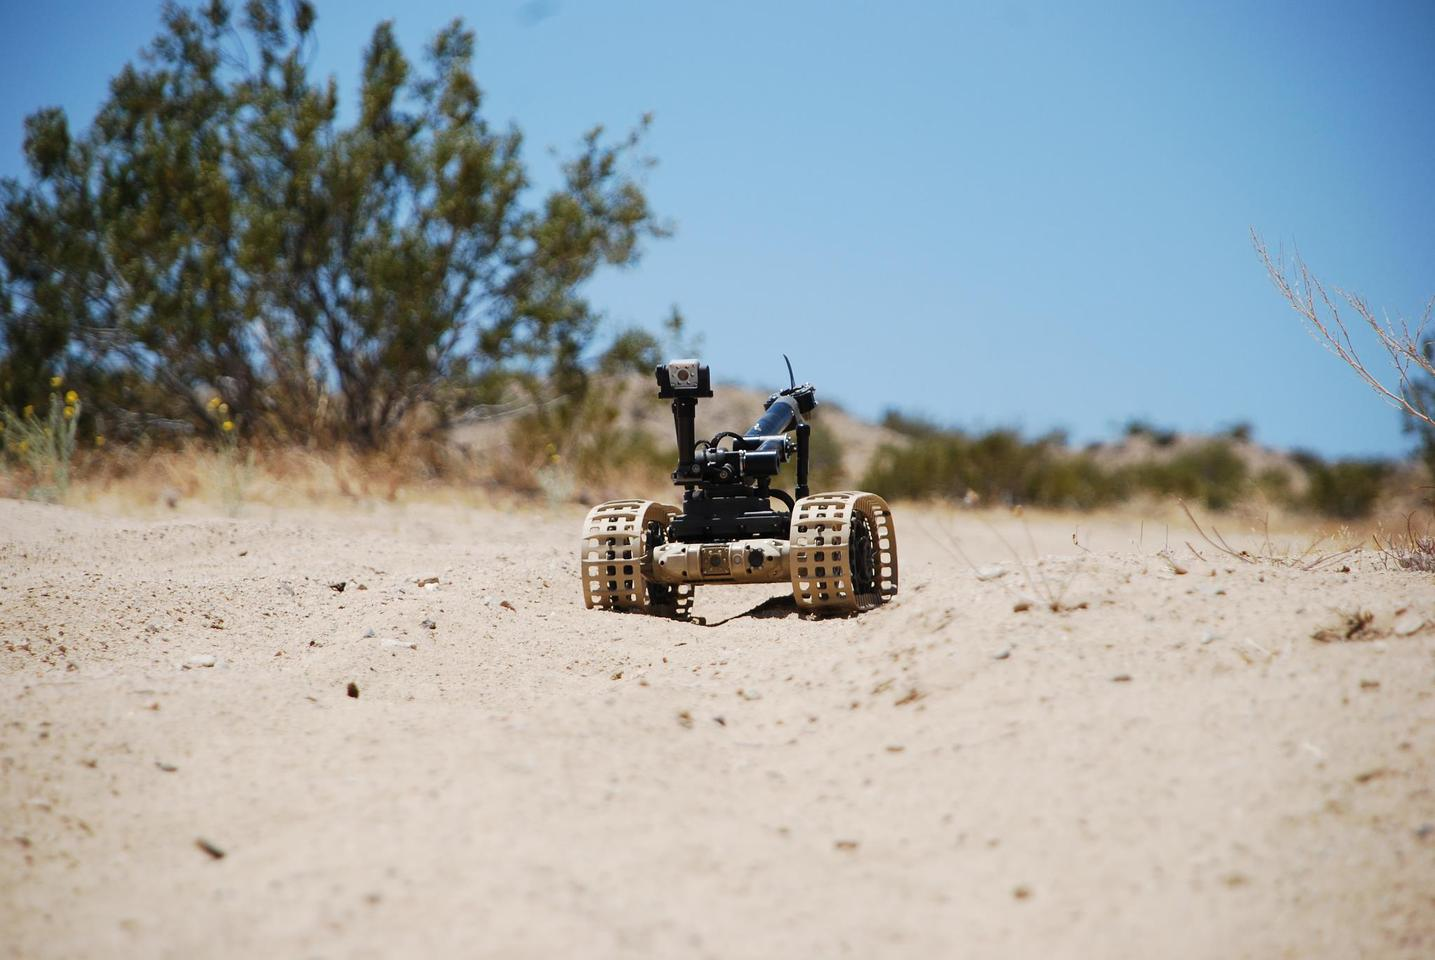 The Dragon Runner 10 can be fitted with tracks or wheels dependent on terrain